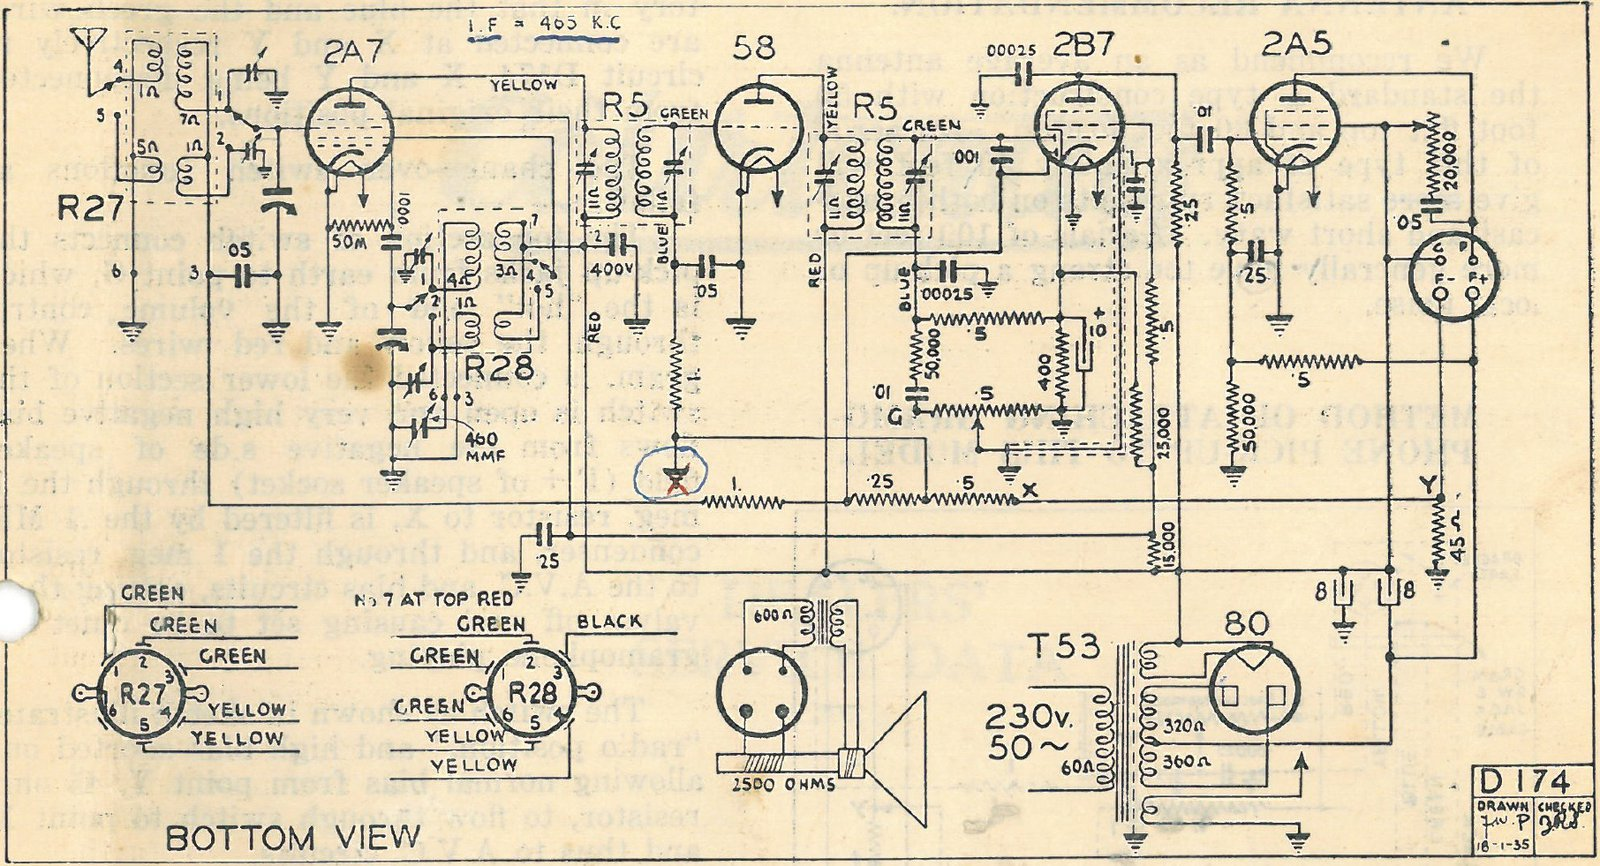 1934 Courtenay model 109 schematic